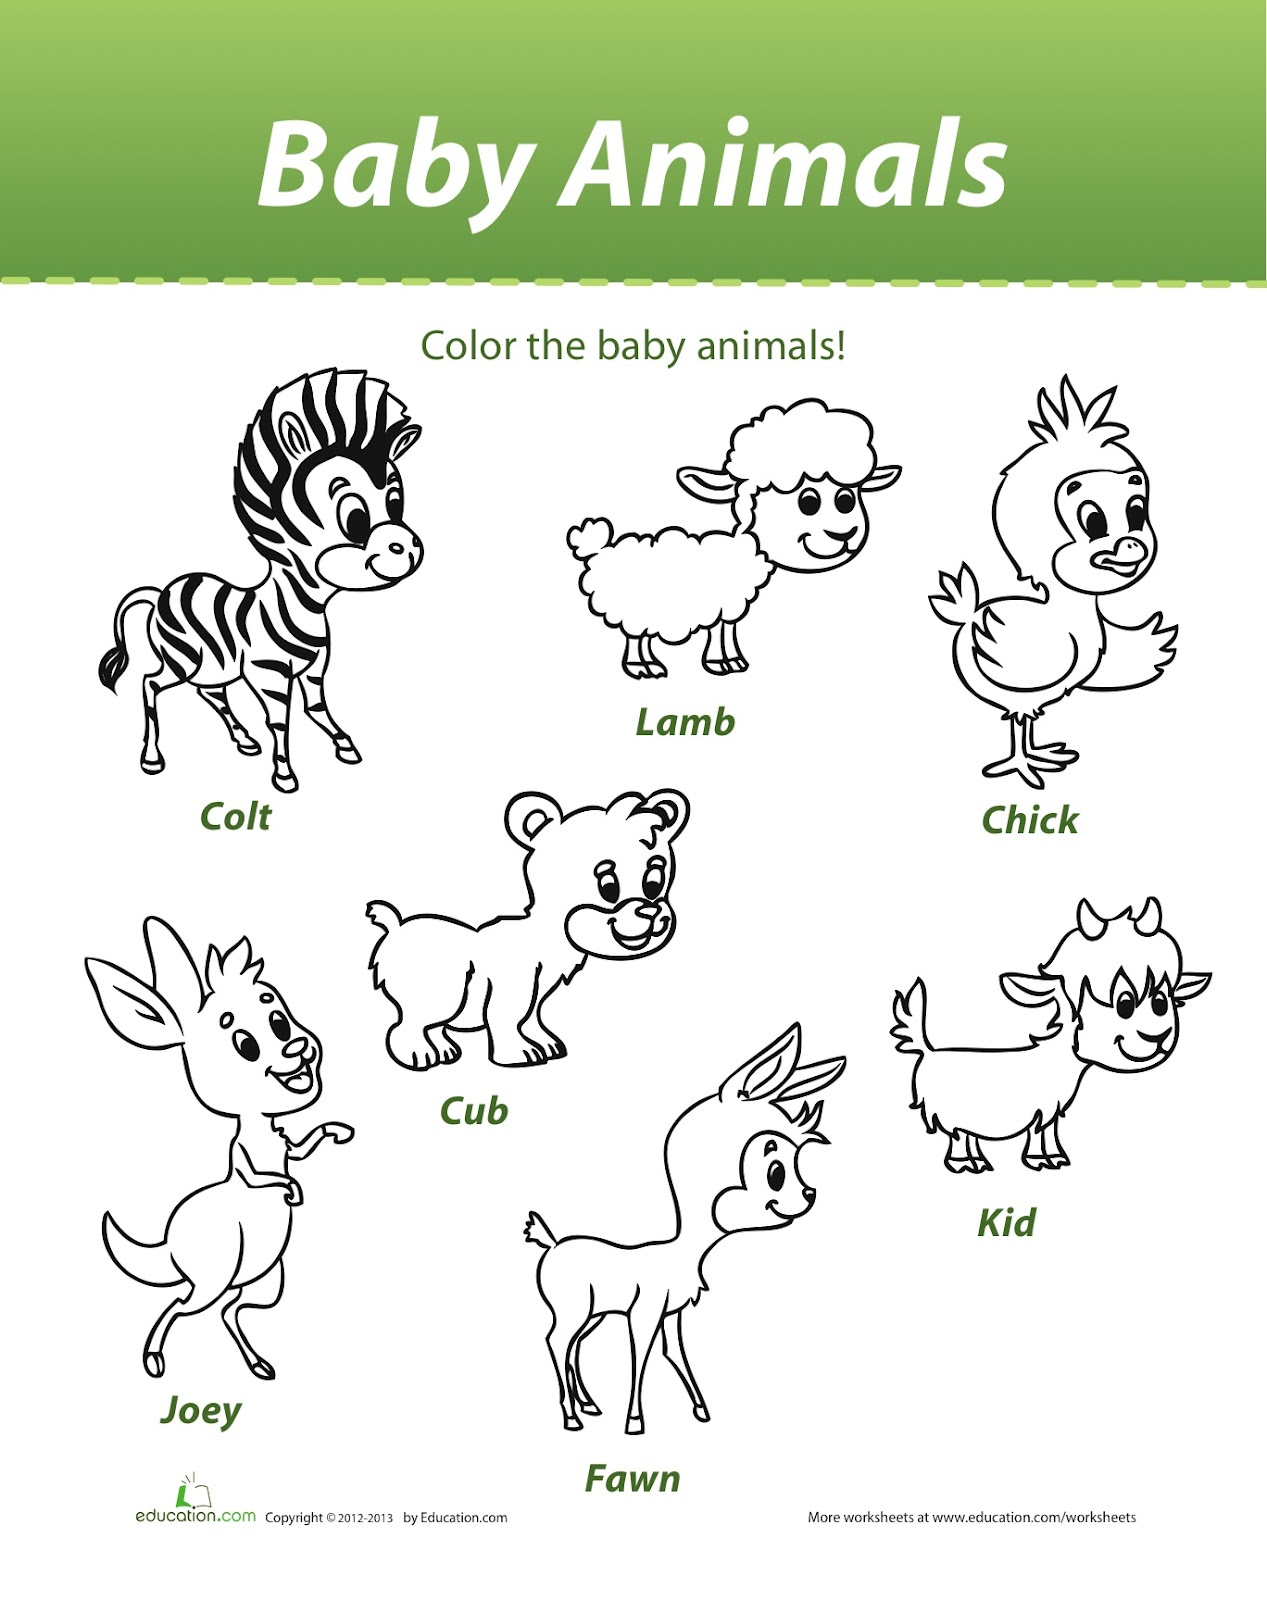 Amazing Baby Animals Esl Printable Worksheets For Kids 1